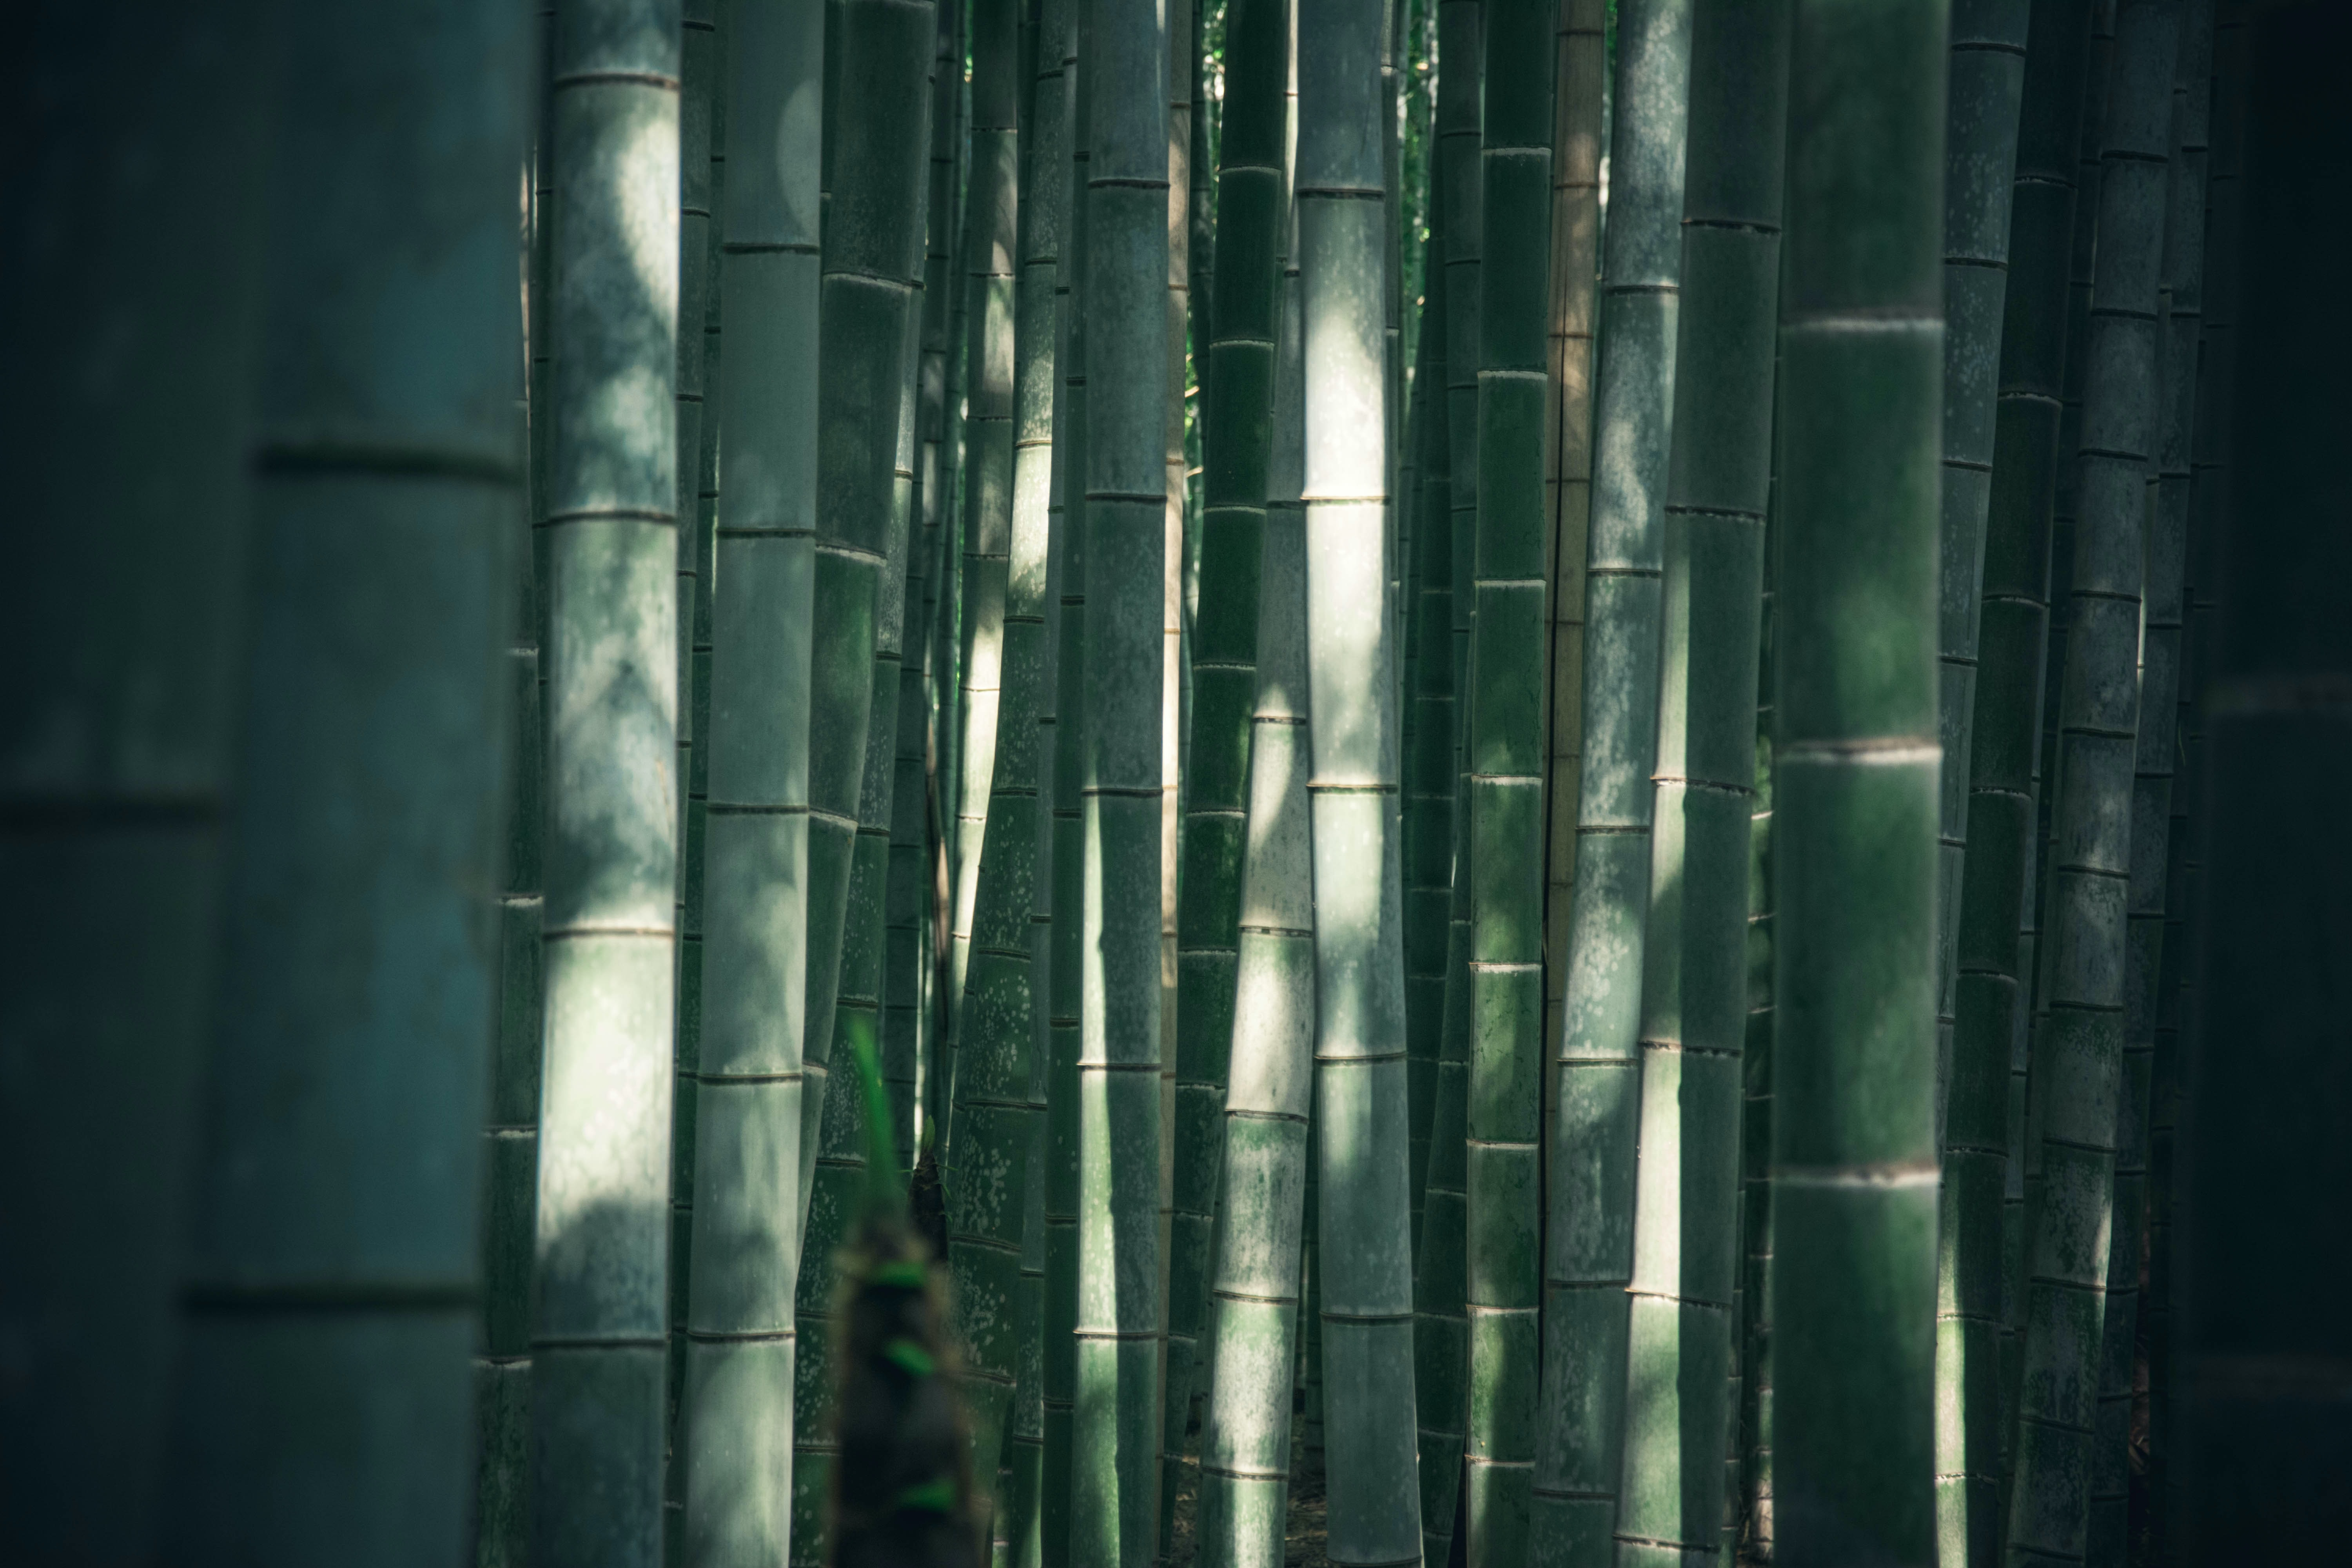 closeup photo of green bamboos